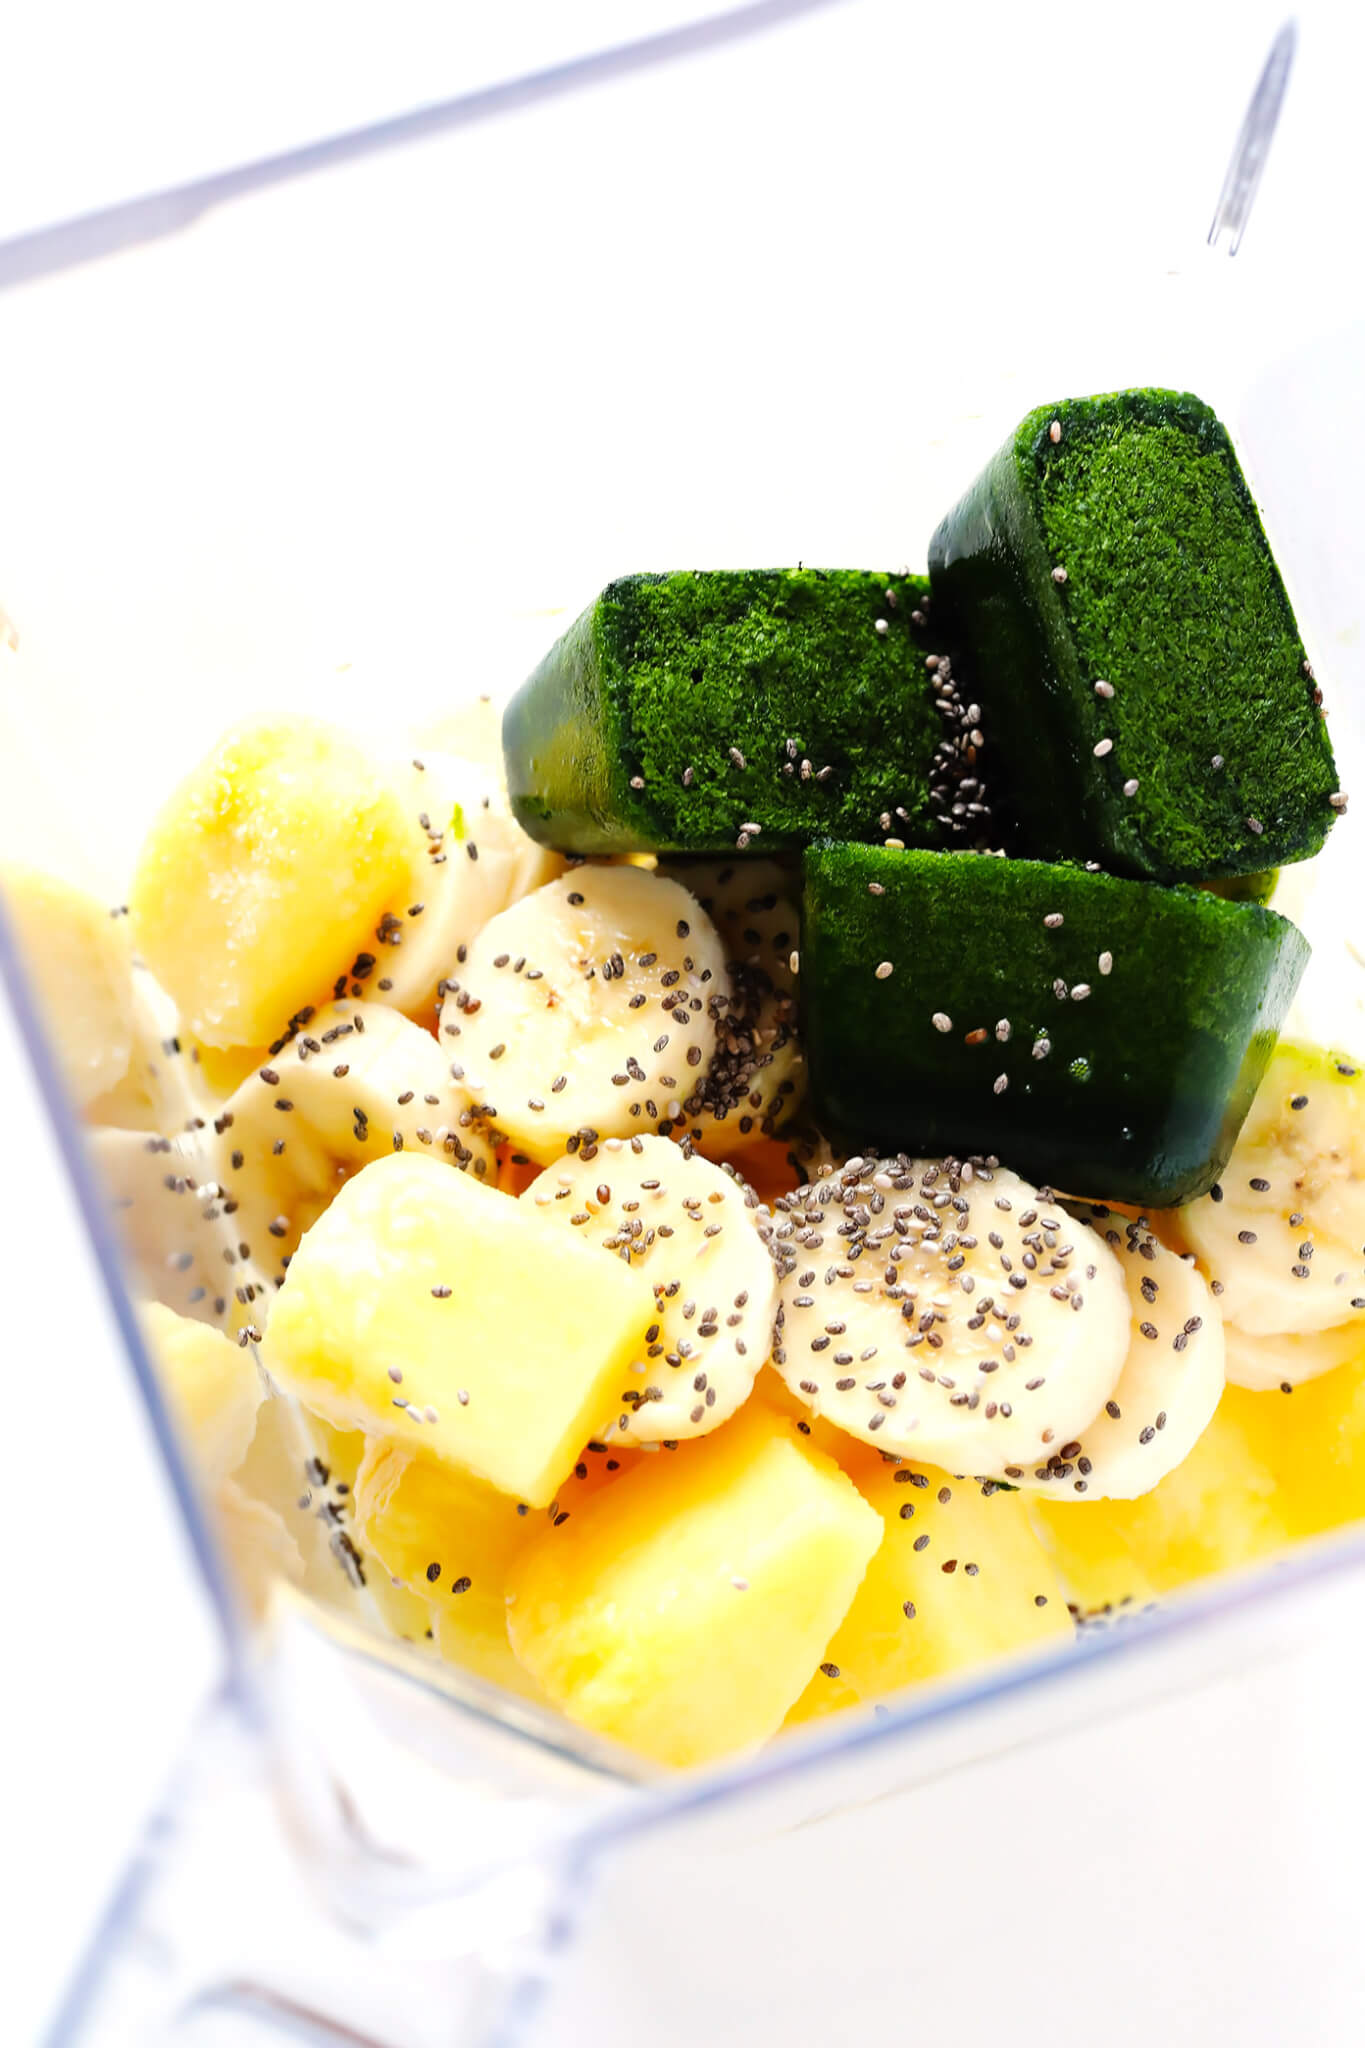 "Frozen Spinach Cubes are my favorite way to make a smoothie ""green""! Just puree baby spinach and coconut water until smooth, freeze, and add to just about any smoothie. 